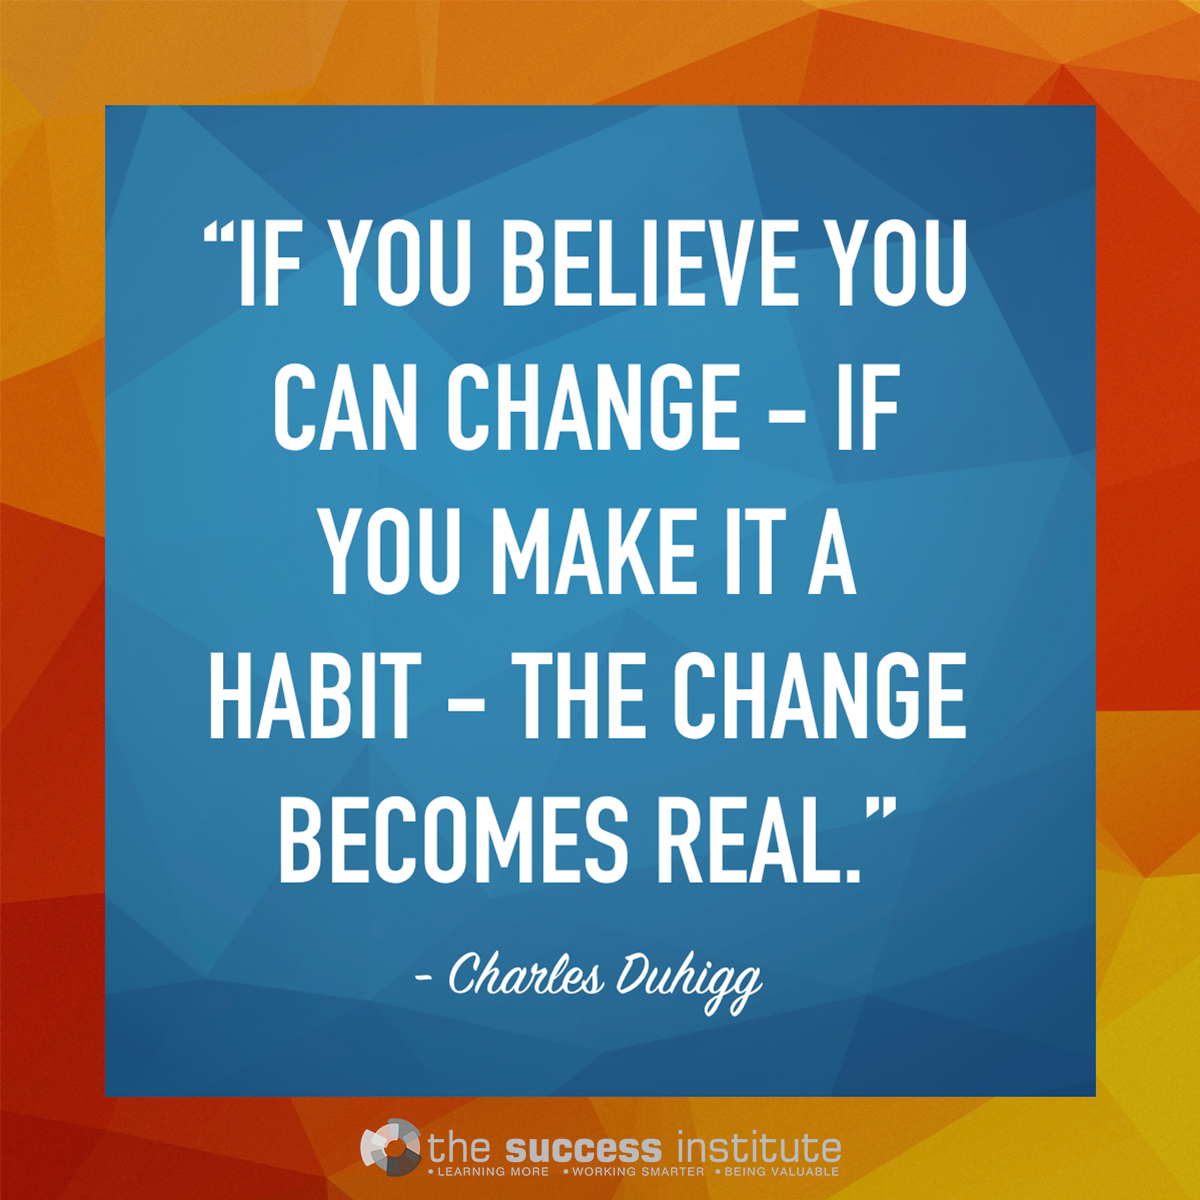 How to Make a Change Become Real